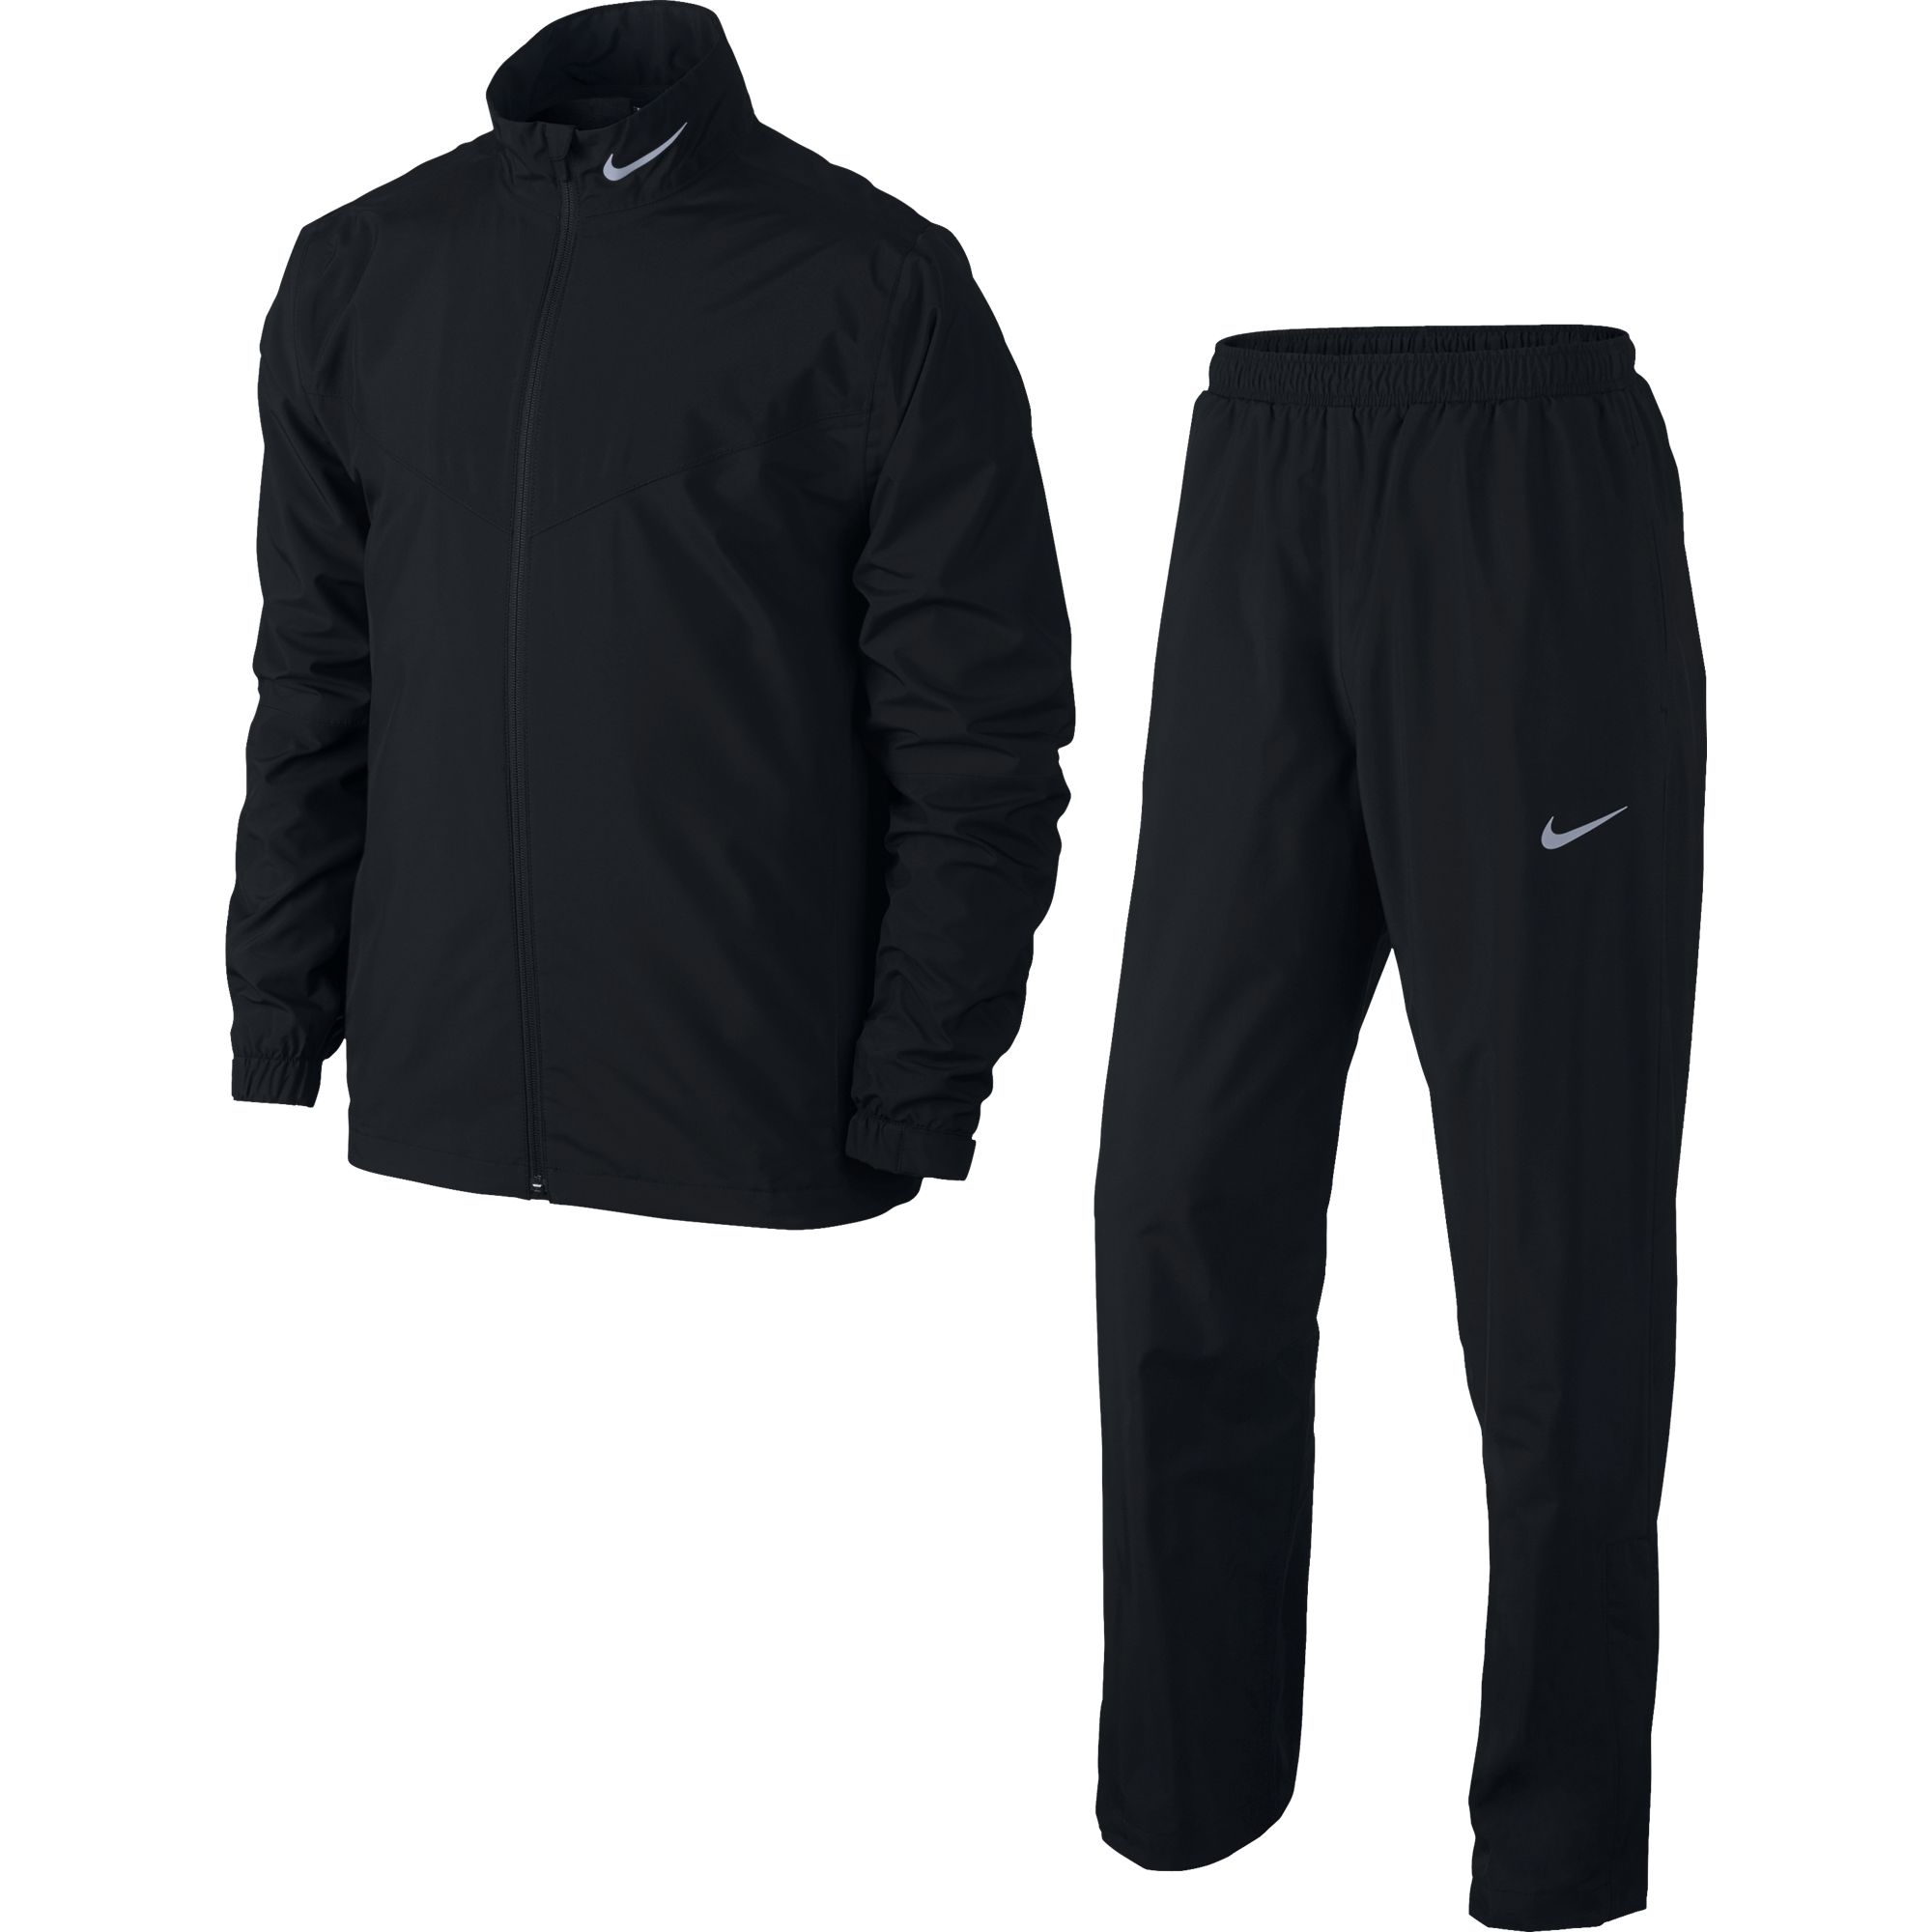 NEW Nike 2016 Storm-Fit Golf Black Rain Suit Men's Medium